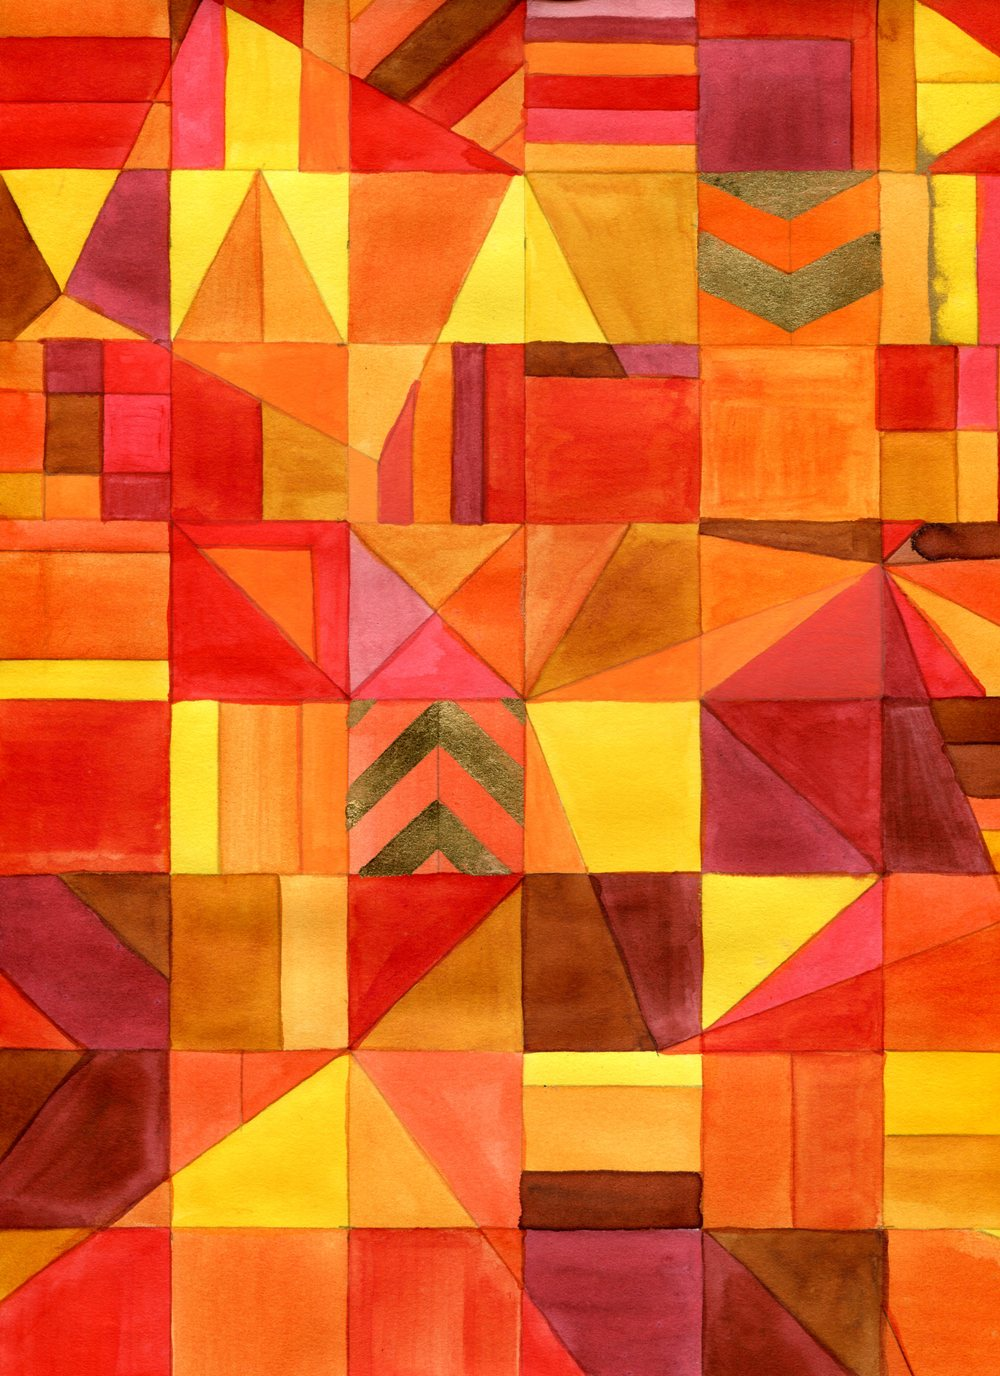 Patterns for Living, #15